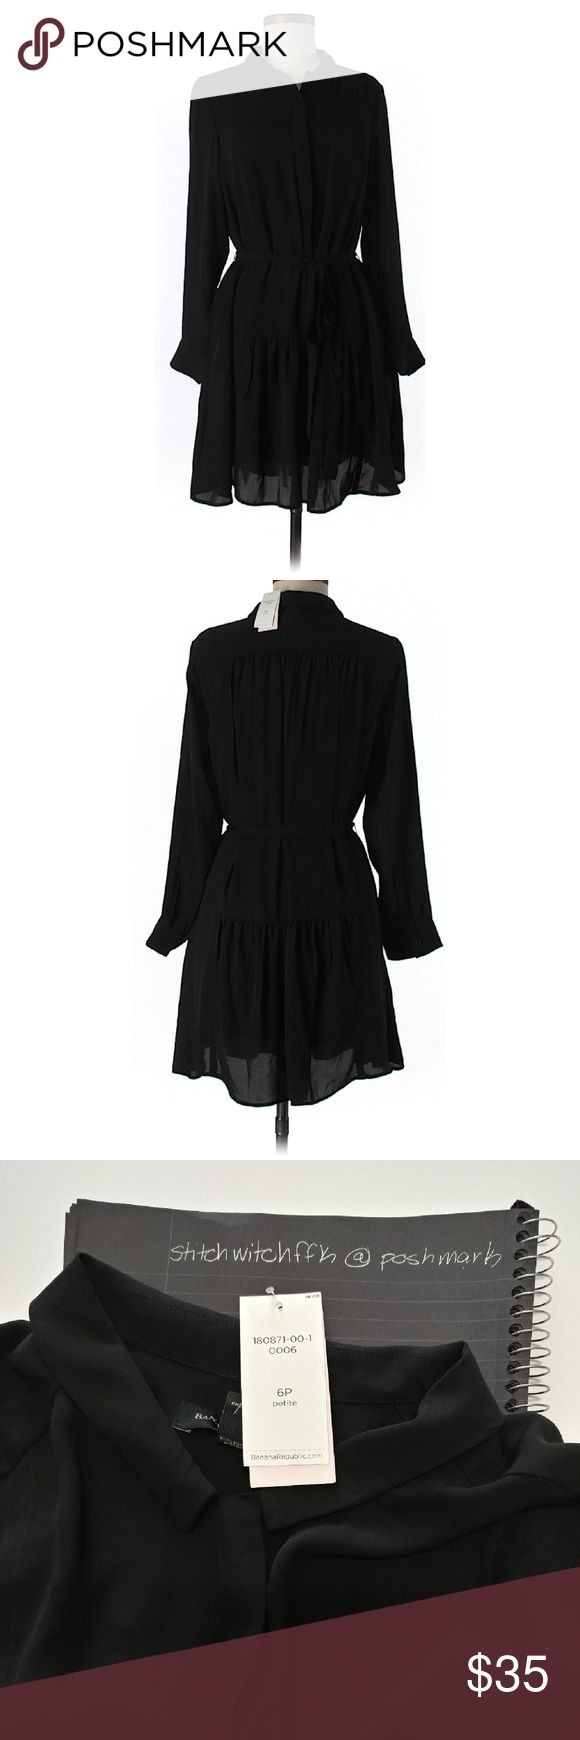 """NWT petite black Banana Republic button down dress Never worn, brand new with tags black dress by Banana Republic. Long sleeve, button up bodice, a-line silhouette, slightly sheer so you might need a slip. 30"""" chest, 37"""" length. Banana Republic Dresses Long Sleeve"""